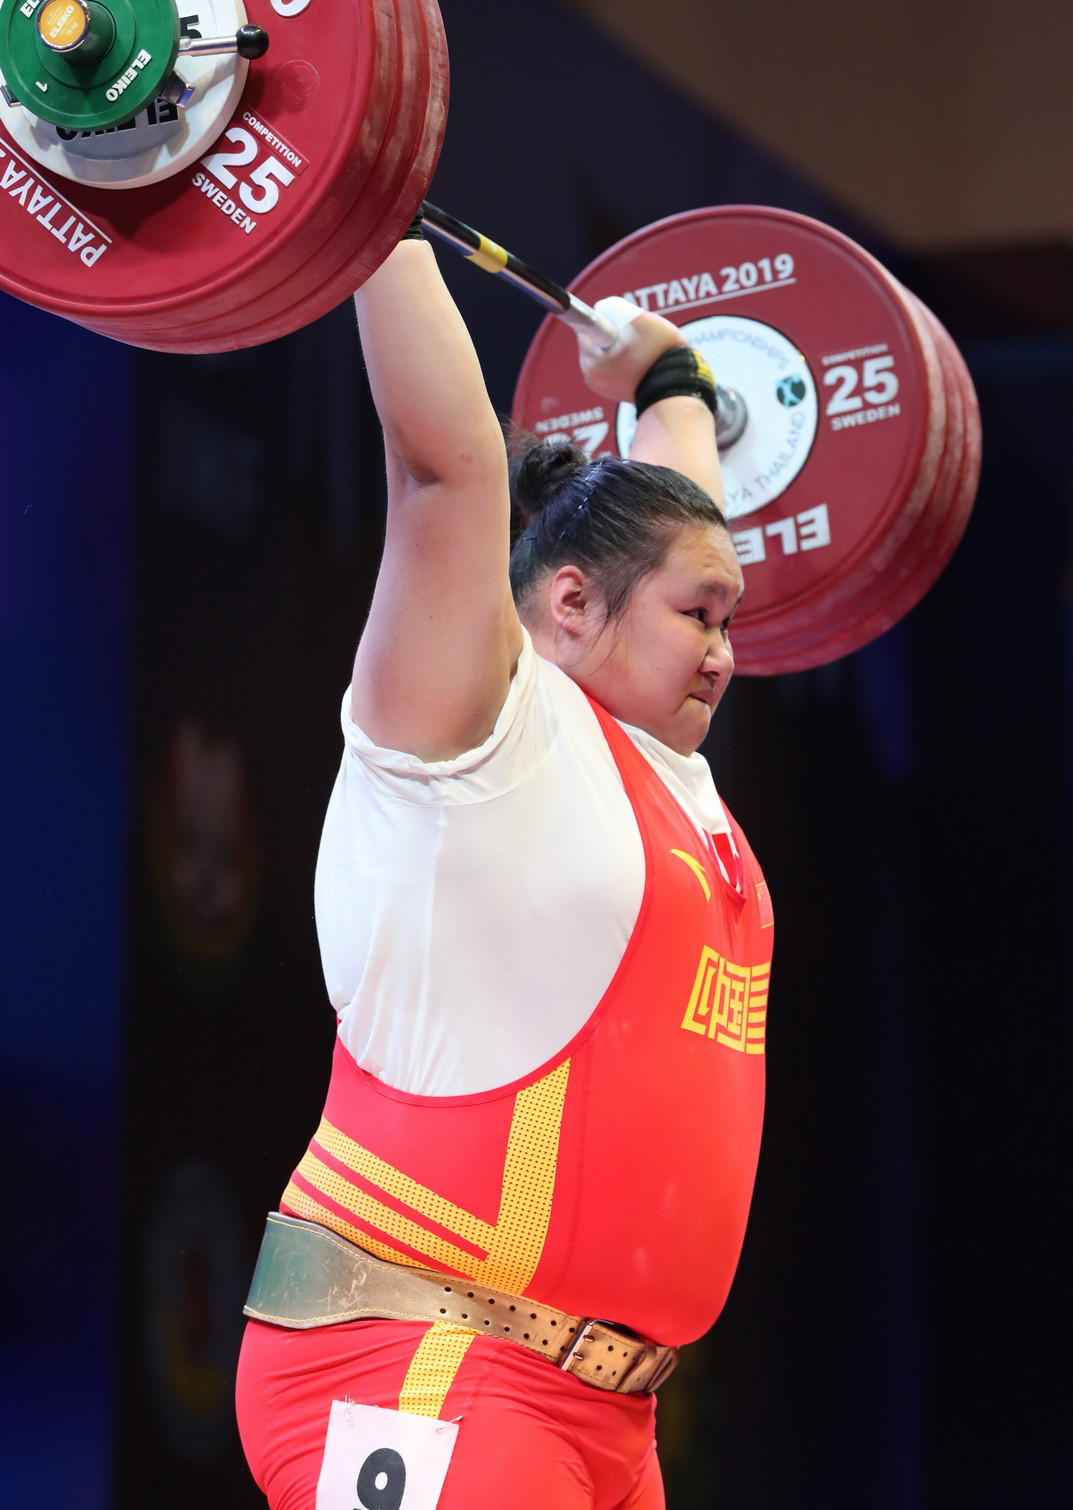 The 19-year-old claimed a hat-trick of gold medals before breaking the clean and jerk and total world records ©IWF